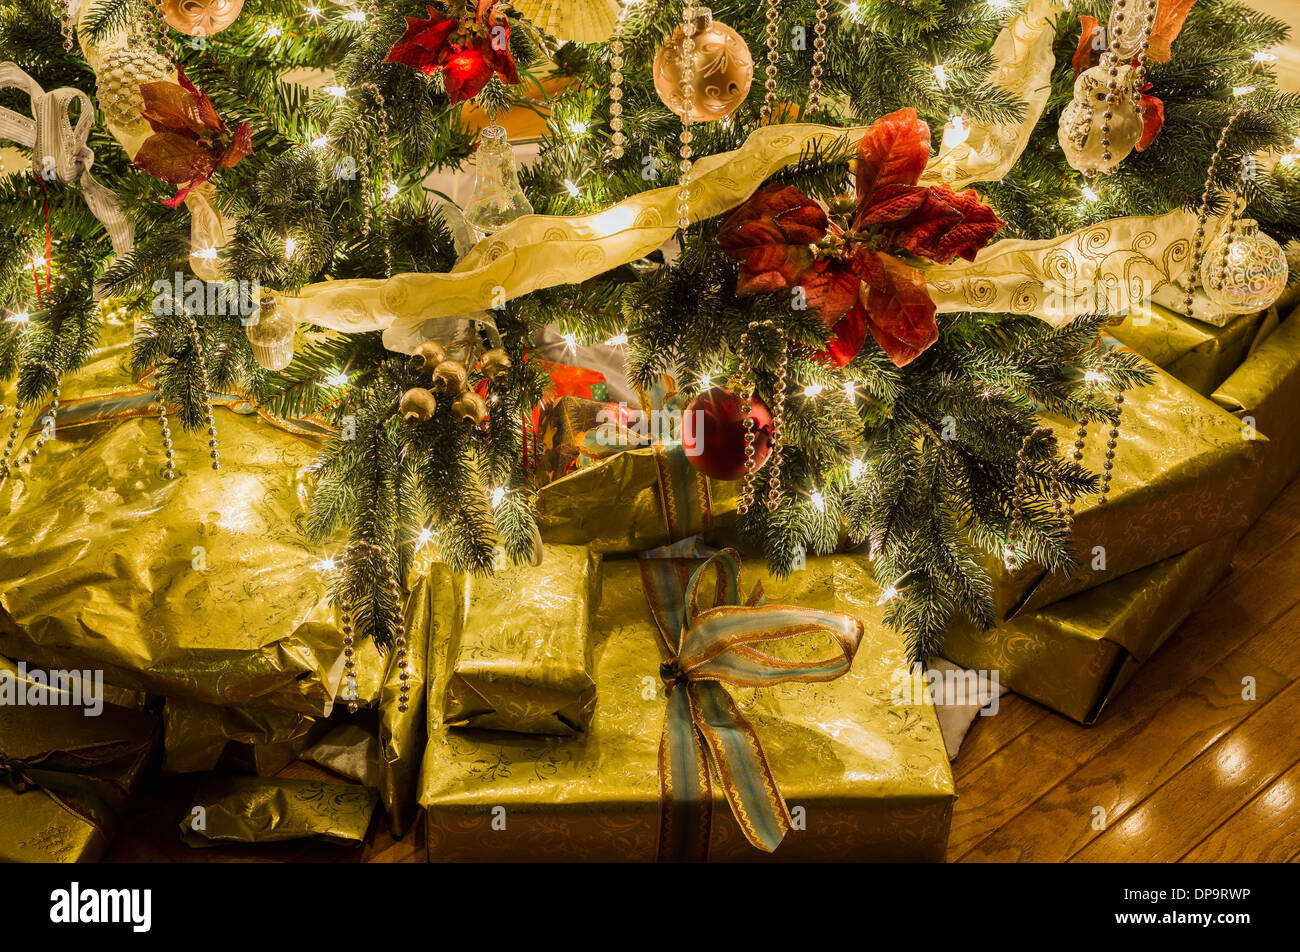 Christmas Gifts Under Decorated Tree Stock Photos & Christmas Gifts ...